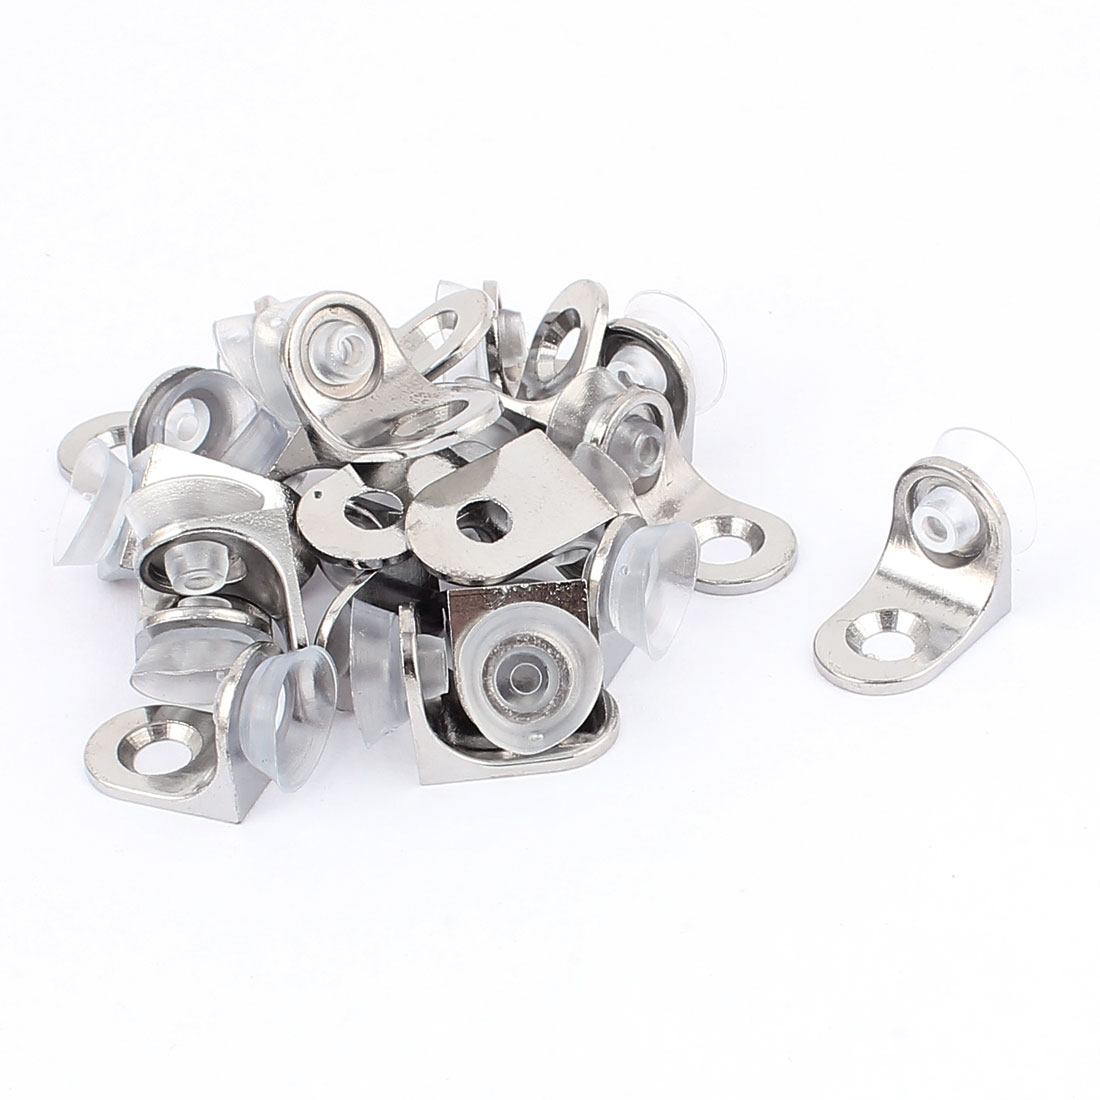 20 Pcs Right Angle Silver Plating Suction Cup Support Bracket Connecter for Glass Shelves